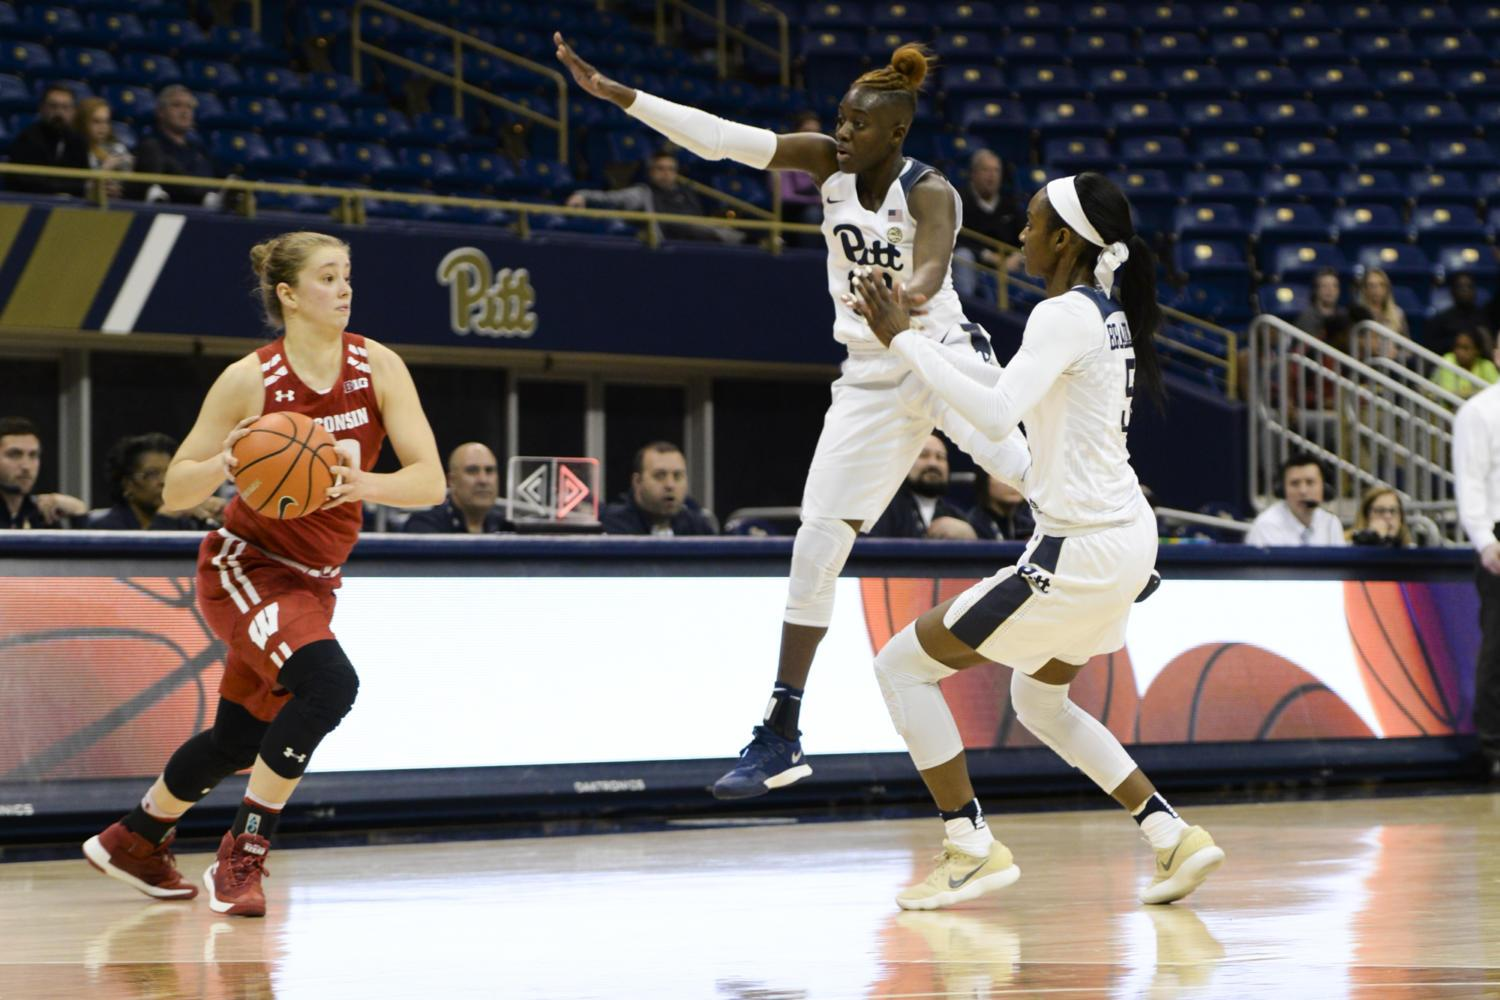 Pitt women's basketball fell to Wisconsin, 58-57, at the Peterson Events Center Wednesday. (Photo by Sarah Cutshall | Staff Photographer)